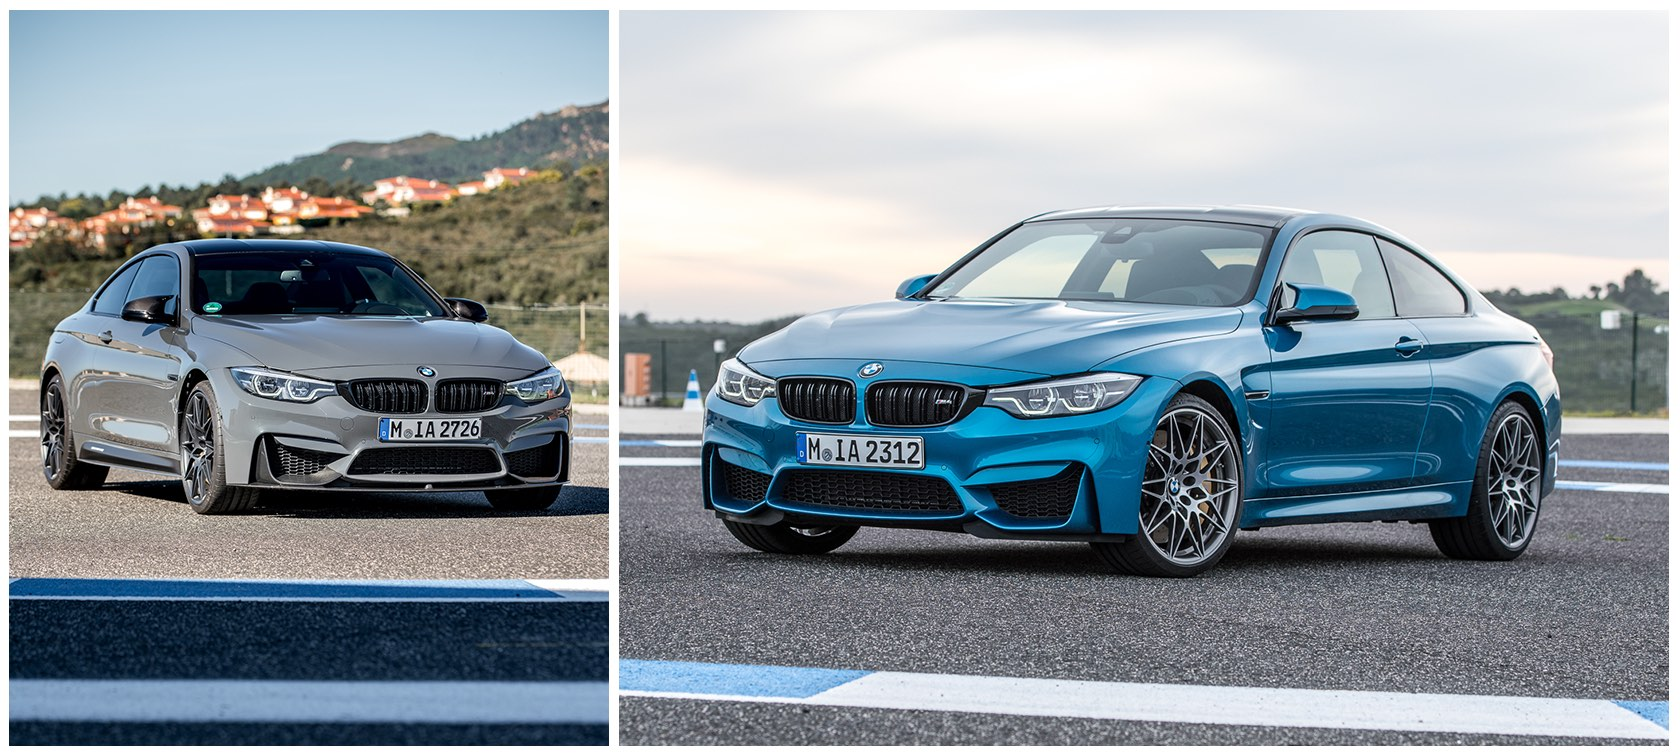 BMW M4 Long Beach Blue and Fashion Grey